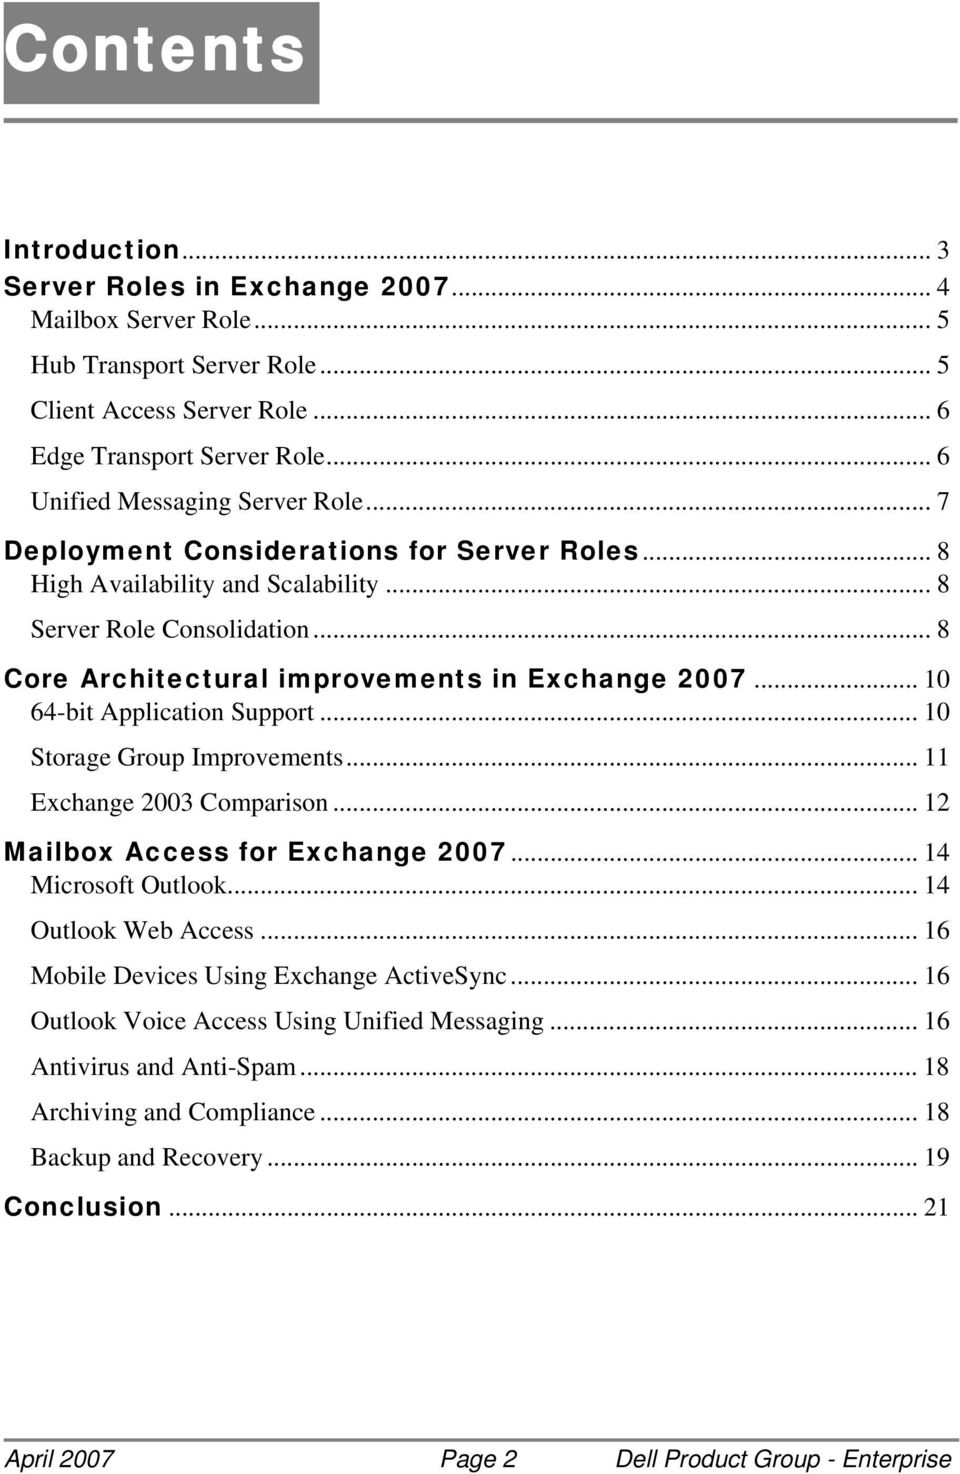 .. 8 Core Architectural improvements in Exchange 2007... 10 64-bit Application Support... 10 Storage Group Improvements... 11 Exchange 2003 Comparison... 12 Mailbox Access for Exchange 2007.